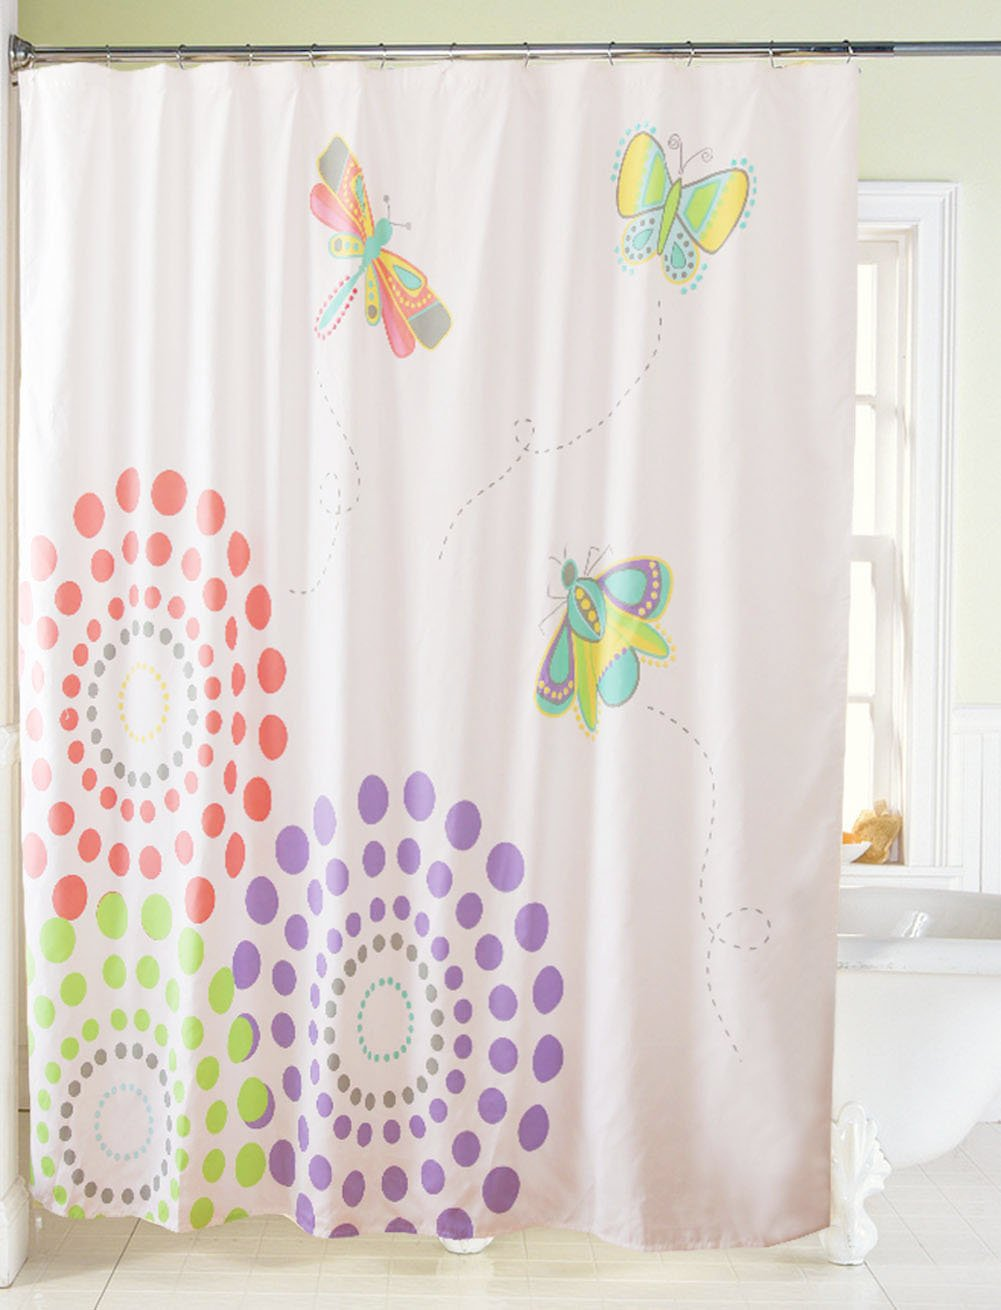 Spring Butterfly Dragonfly Colorful Printed Fabric Shower Curtain ...